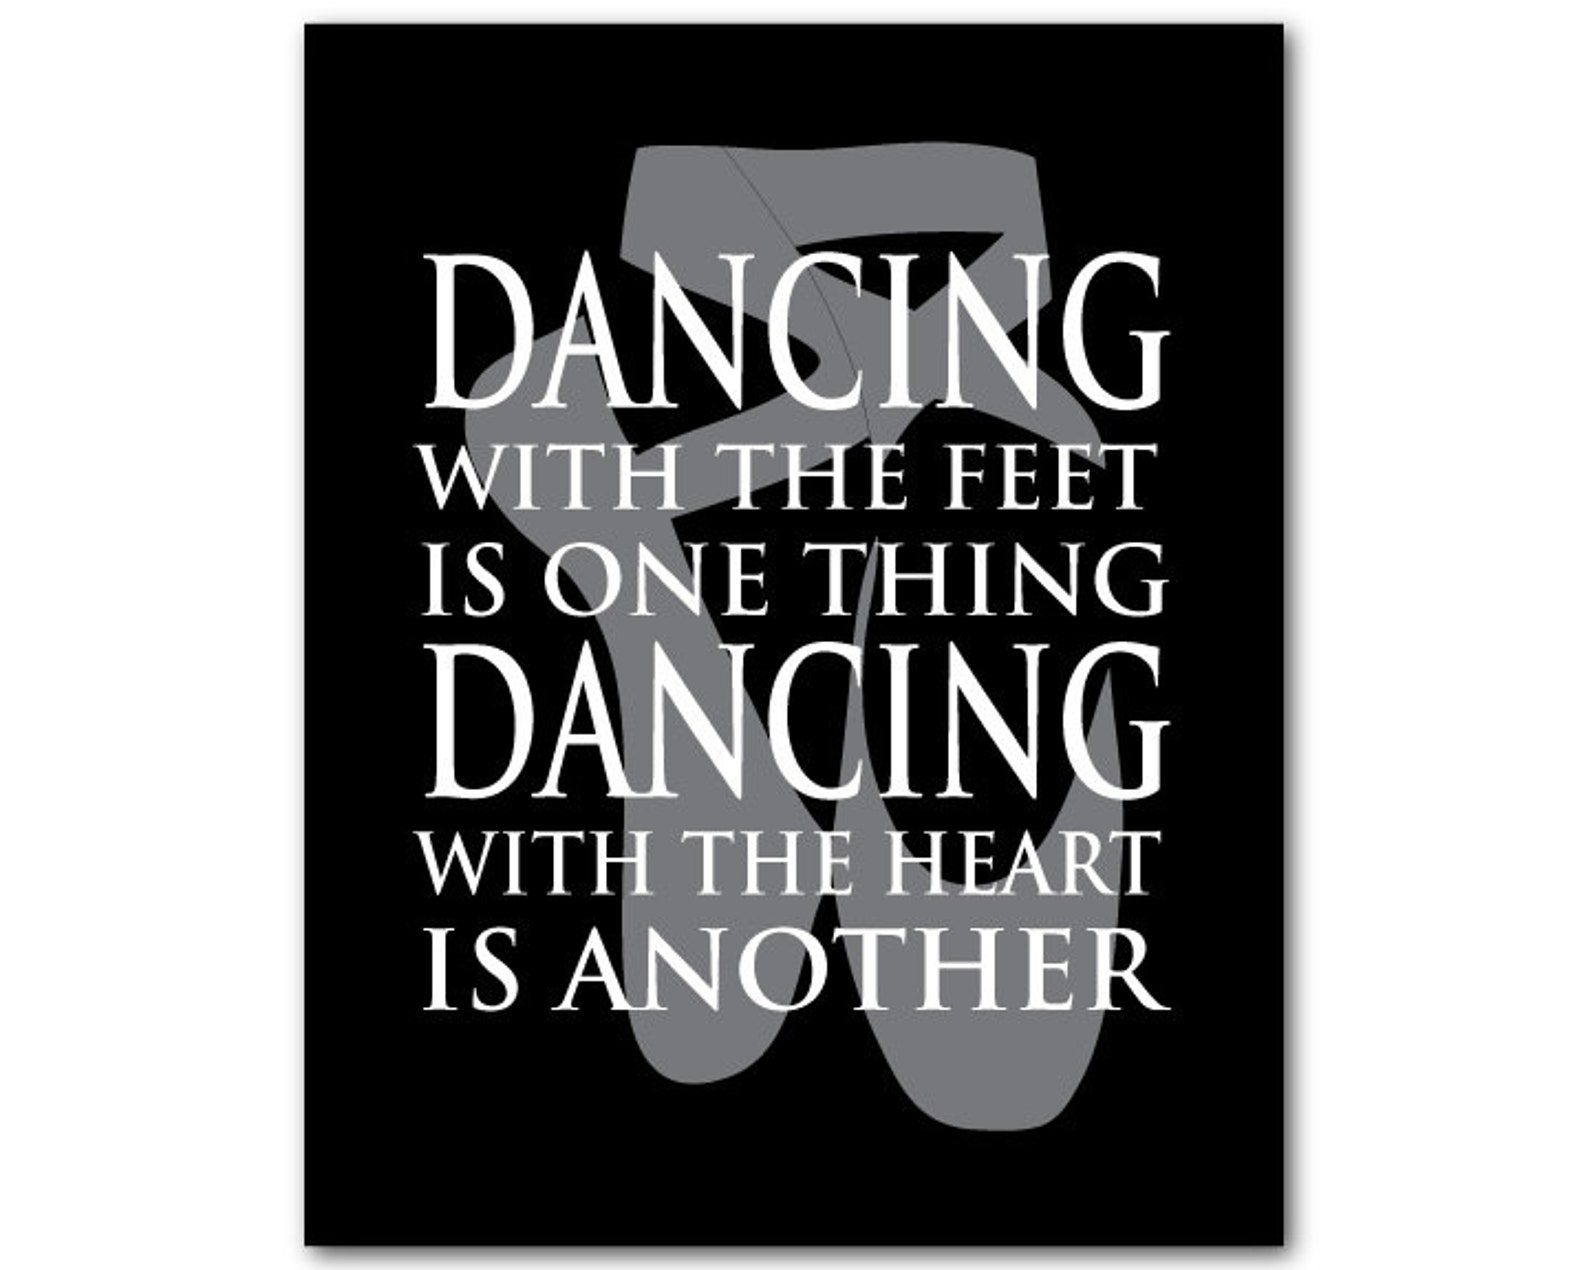 dancing with the feet is one thing dancing with the heart is another - dance wall art - ballet print - teen tween wall decor - g